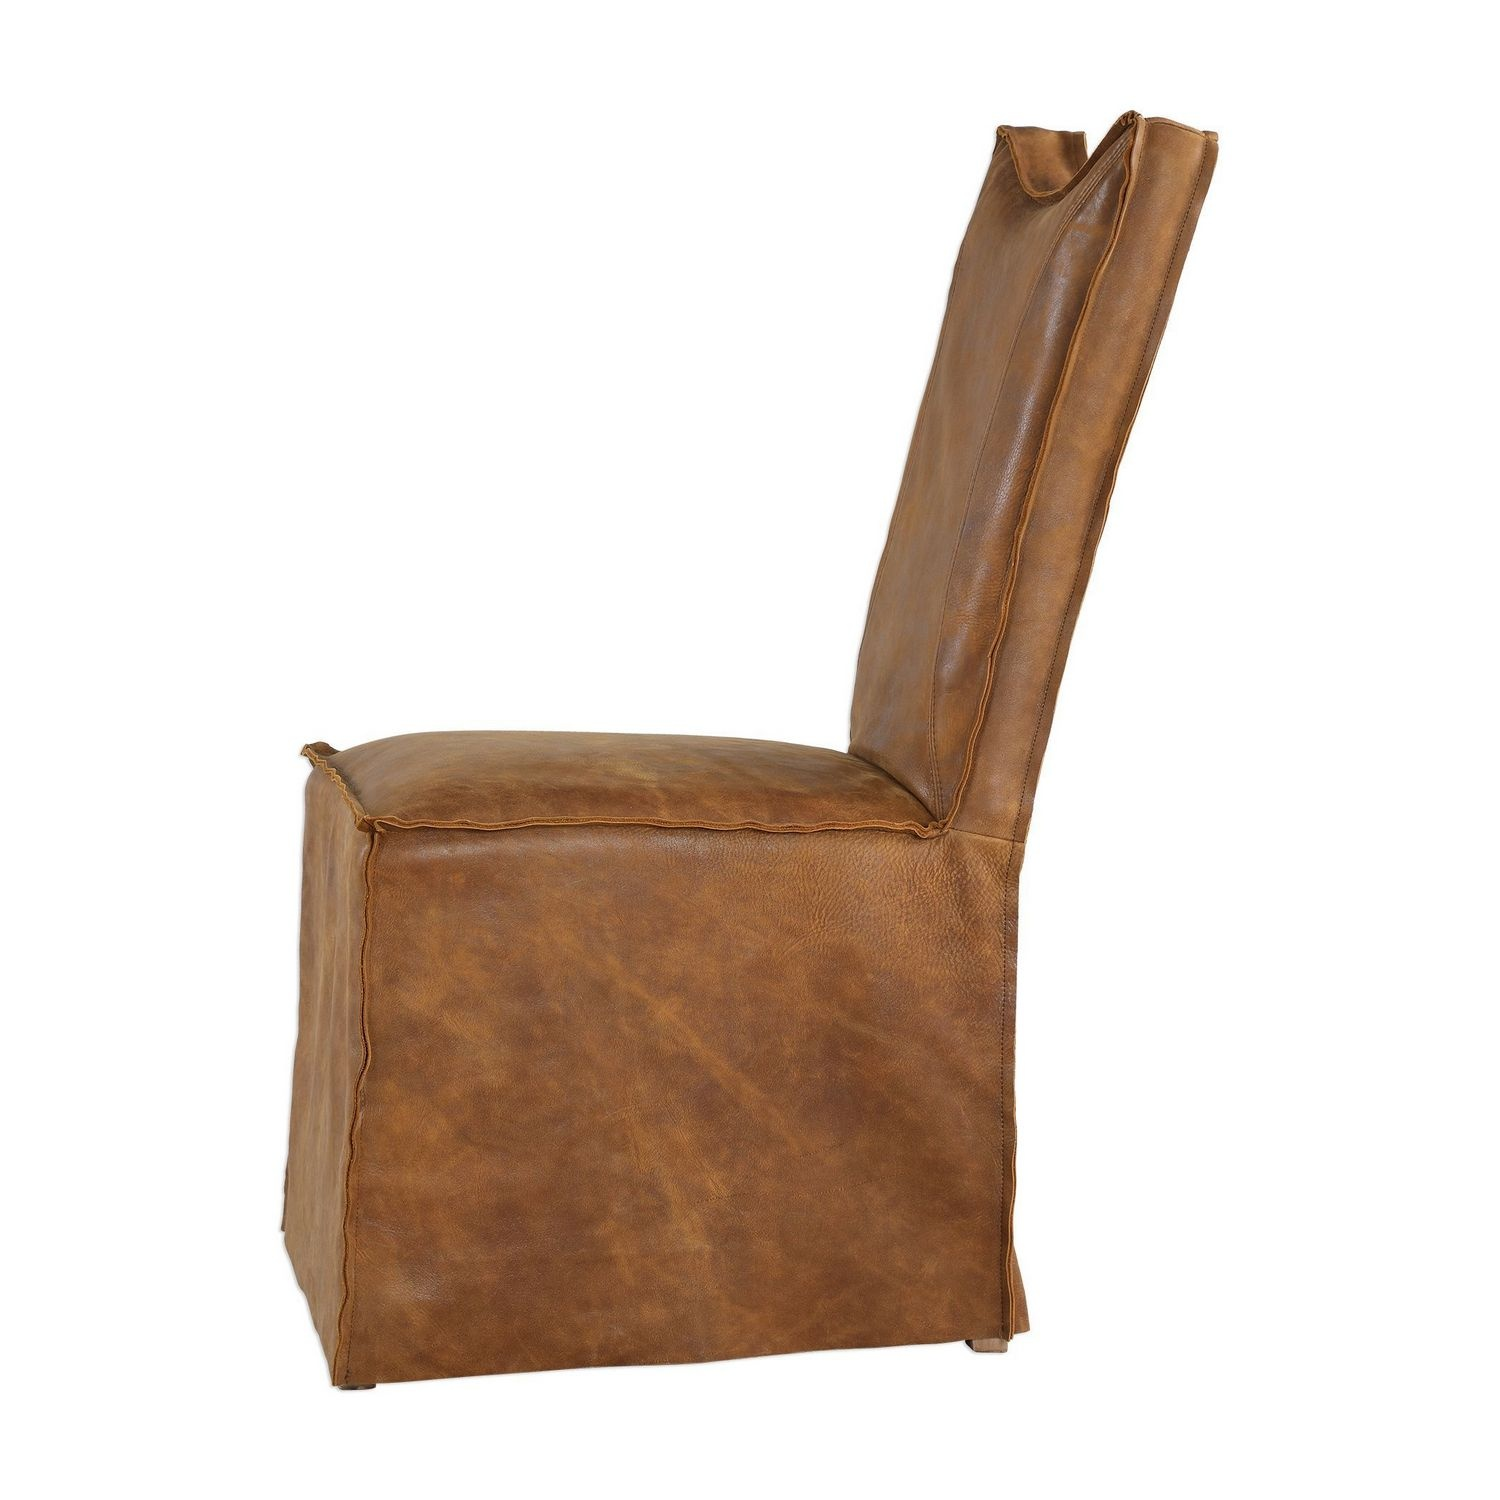 Uttermost Delroy Armless Chairs - Set of 2 - Cognac